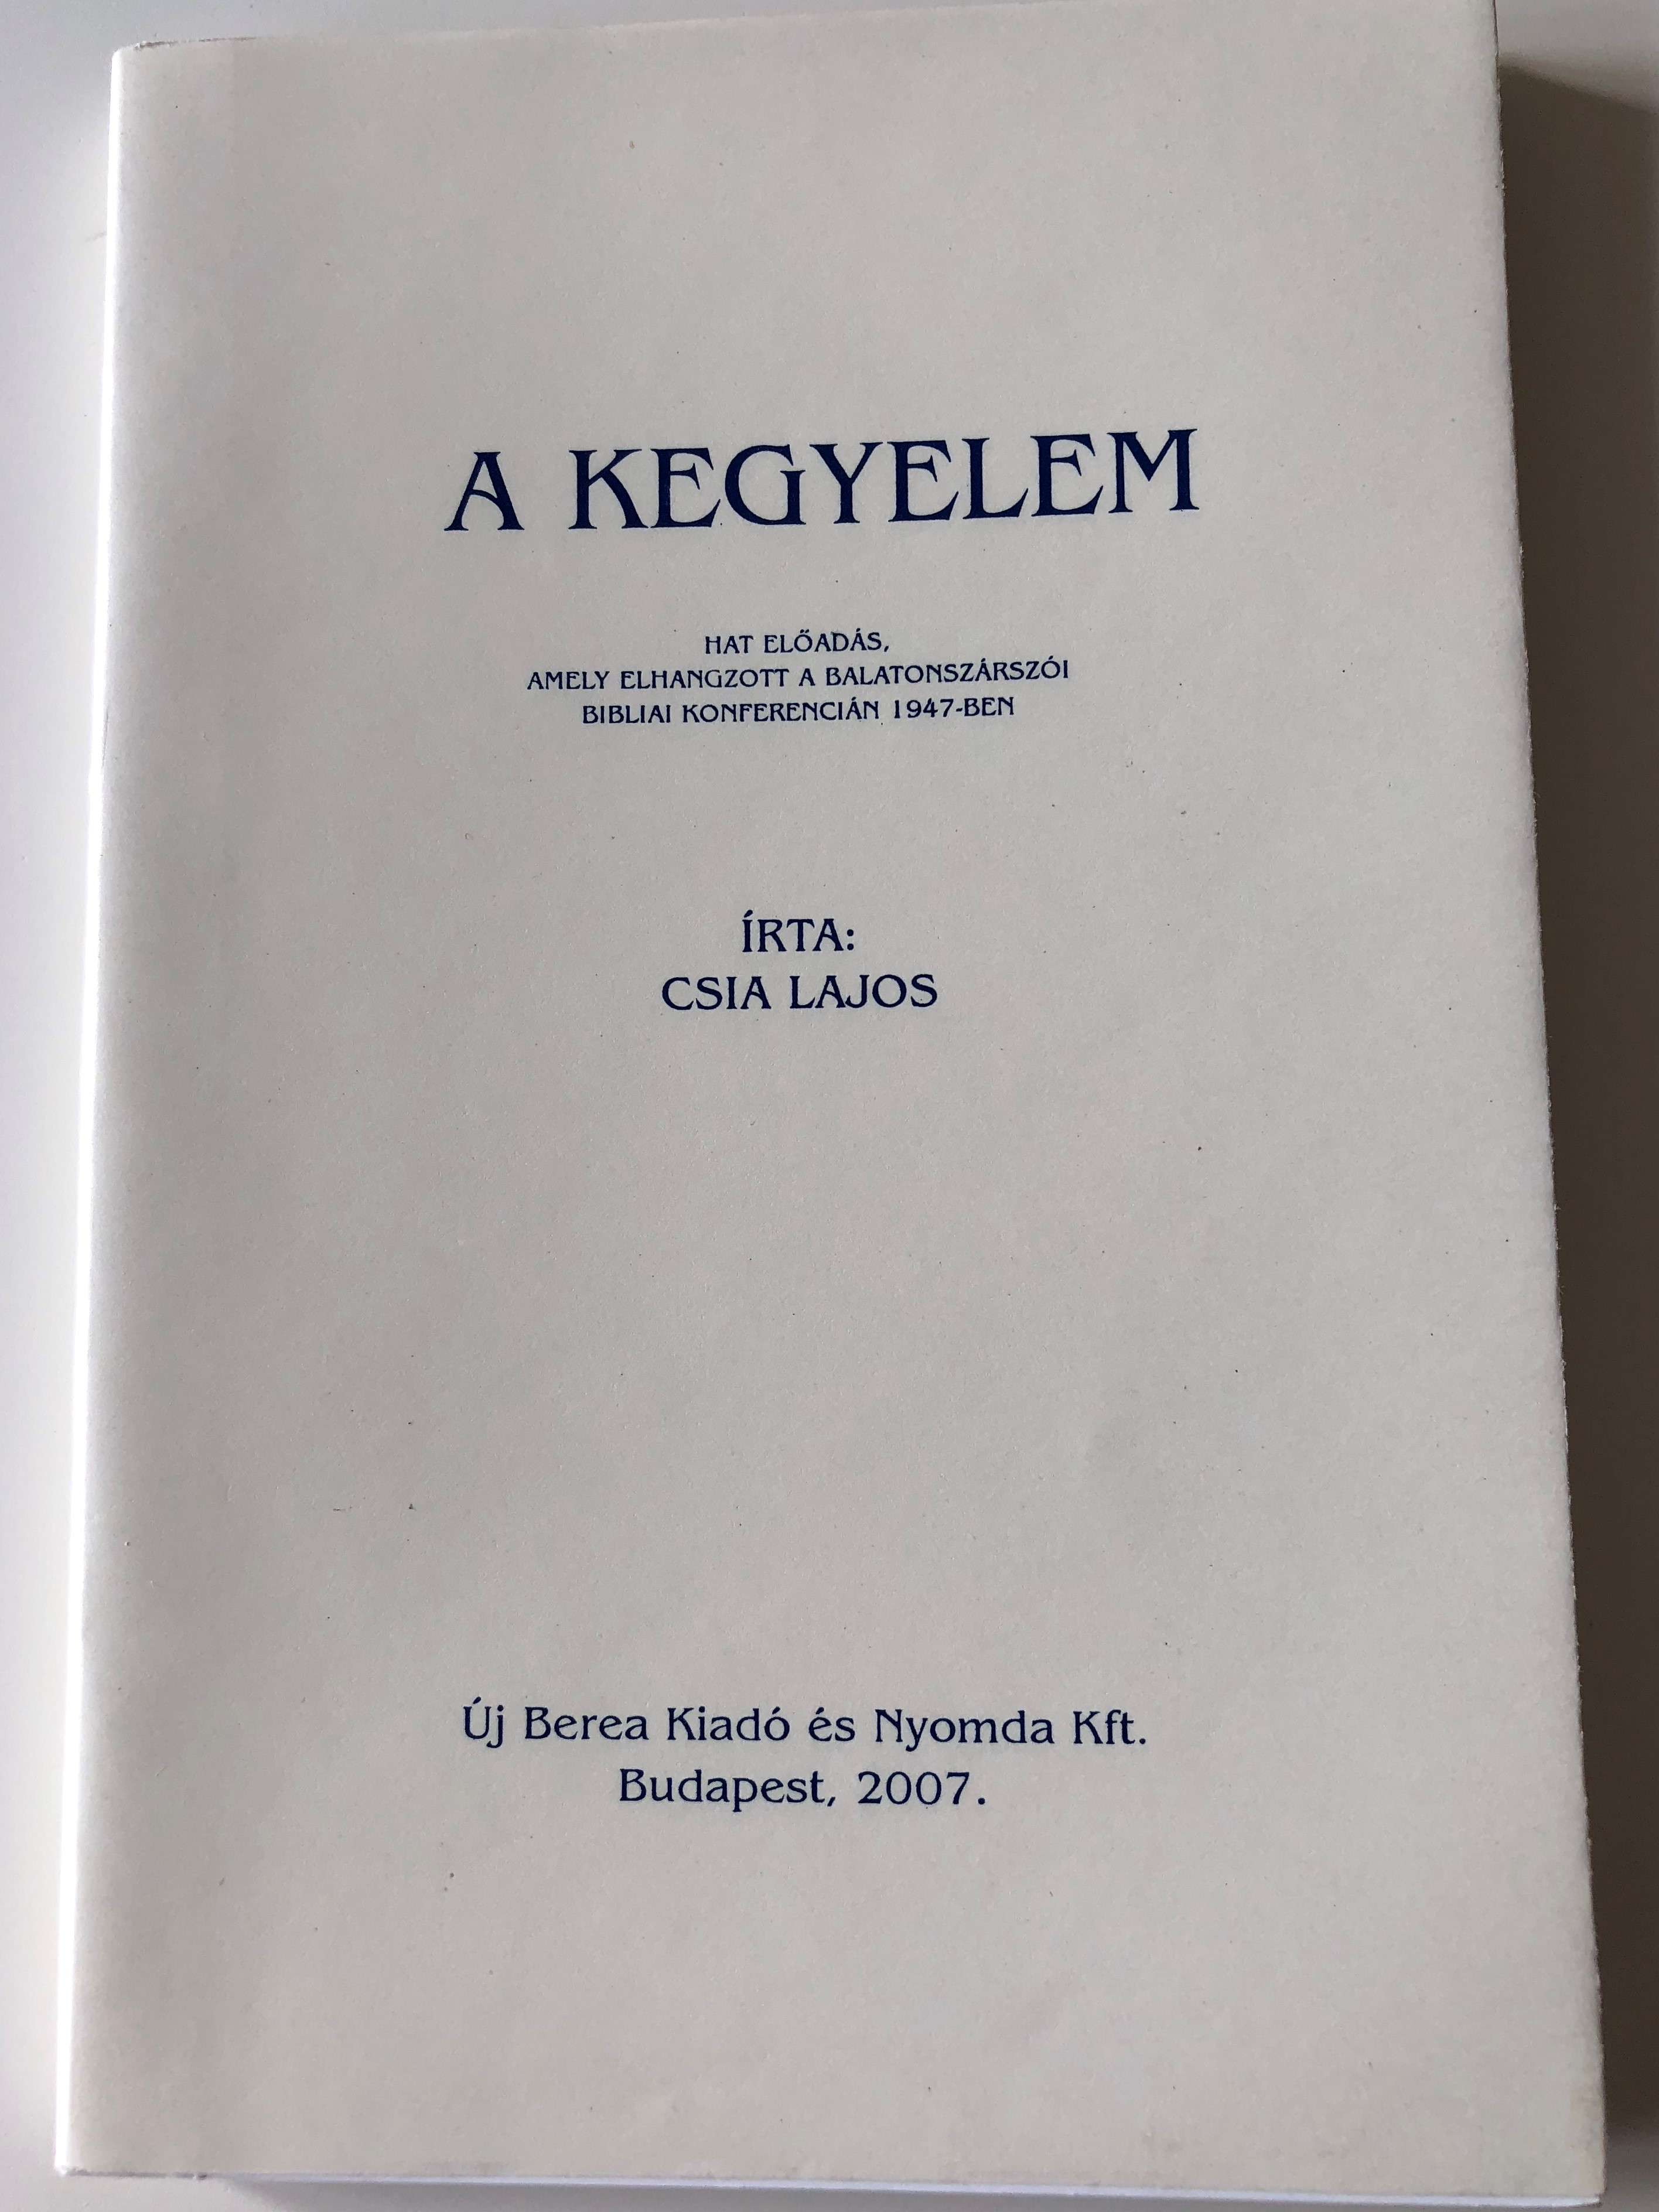 a-kegyelem-by-csia-lajos-hat-el-ad-s-amely-elhangzott-a-balatonsz-rsz-i-bibliai-konferenci-n-1947-be-the-grace-hungarian-language-booklet-containing-six-sermons-preached-in-1947-on-balatonsz-rsz-bible-conference-j-b-1-.jpg